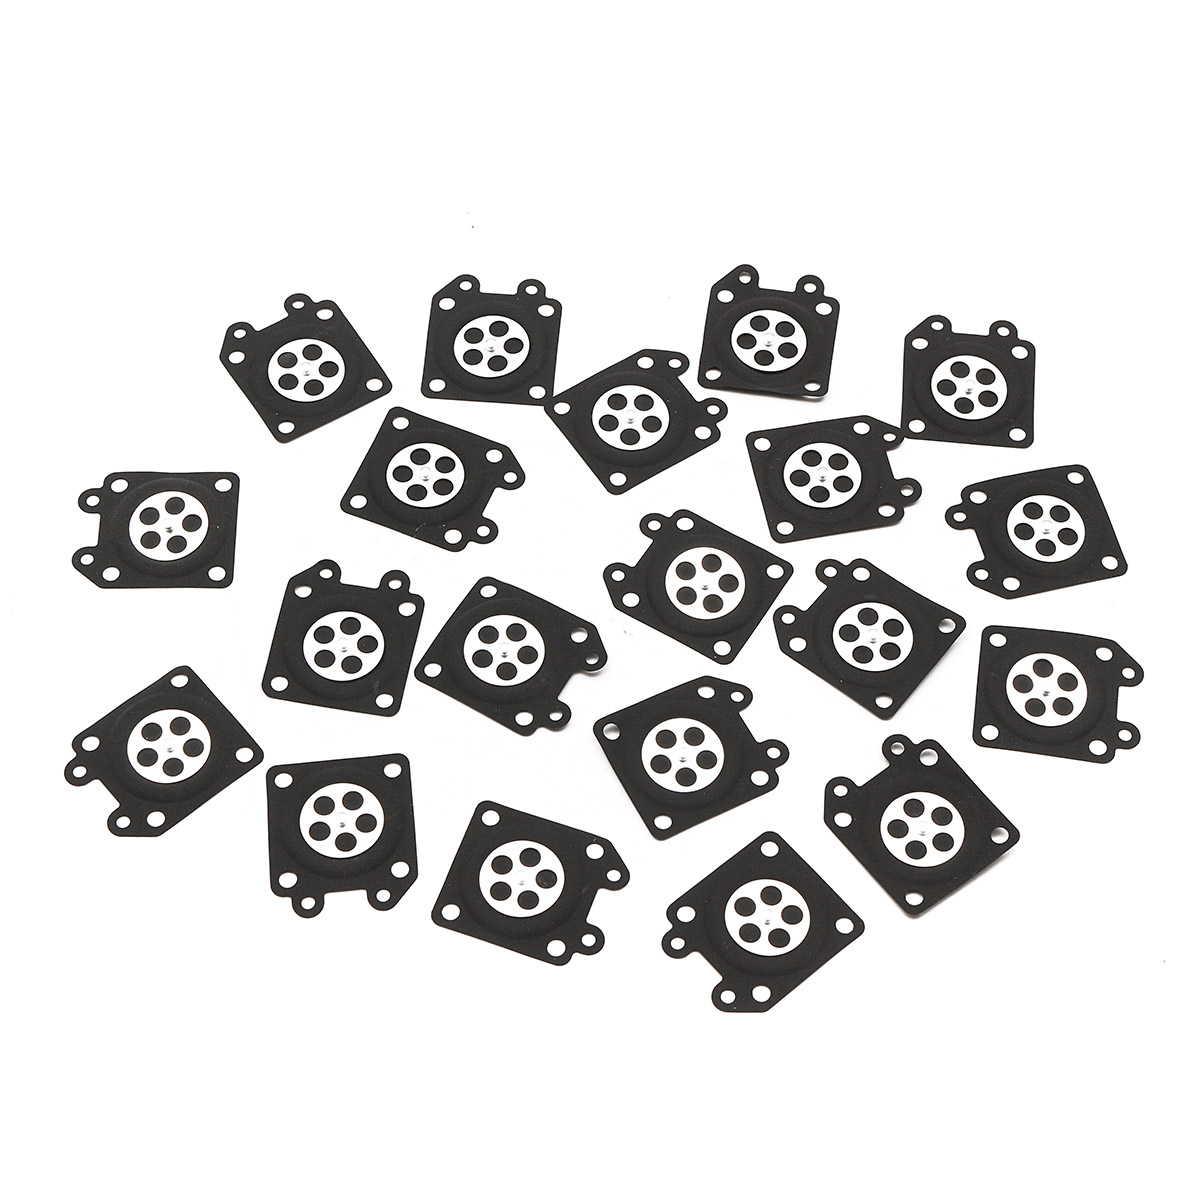 20x Chainsaw Carburetor Metering Diaphragm For Walbro 95-526 95-526-9 95-526-9-8 95